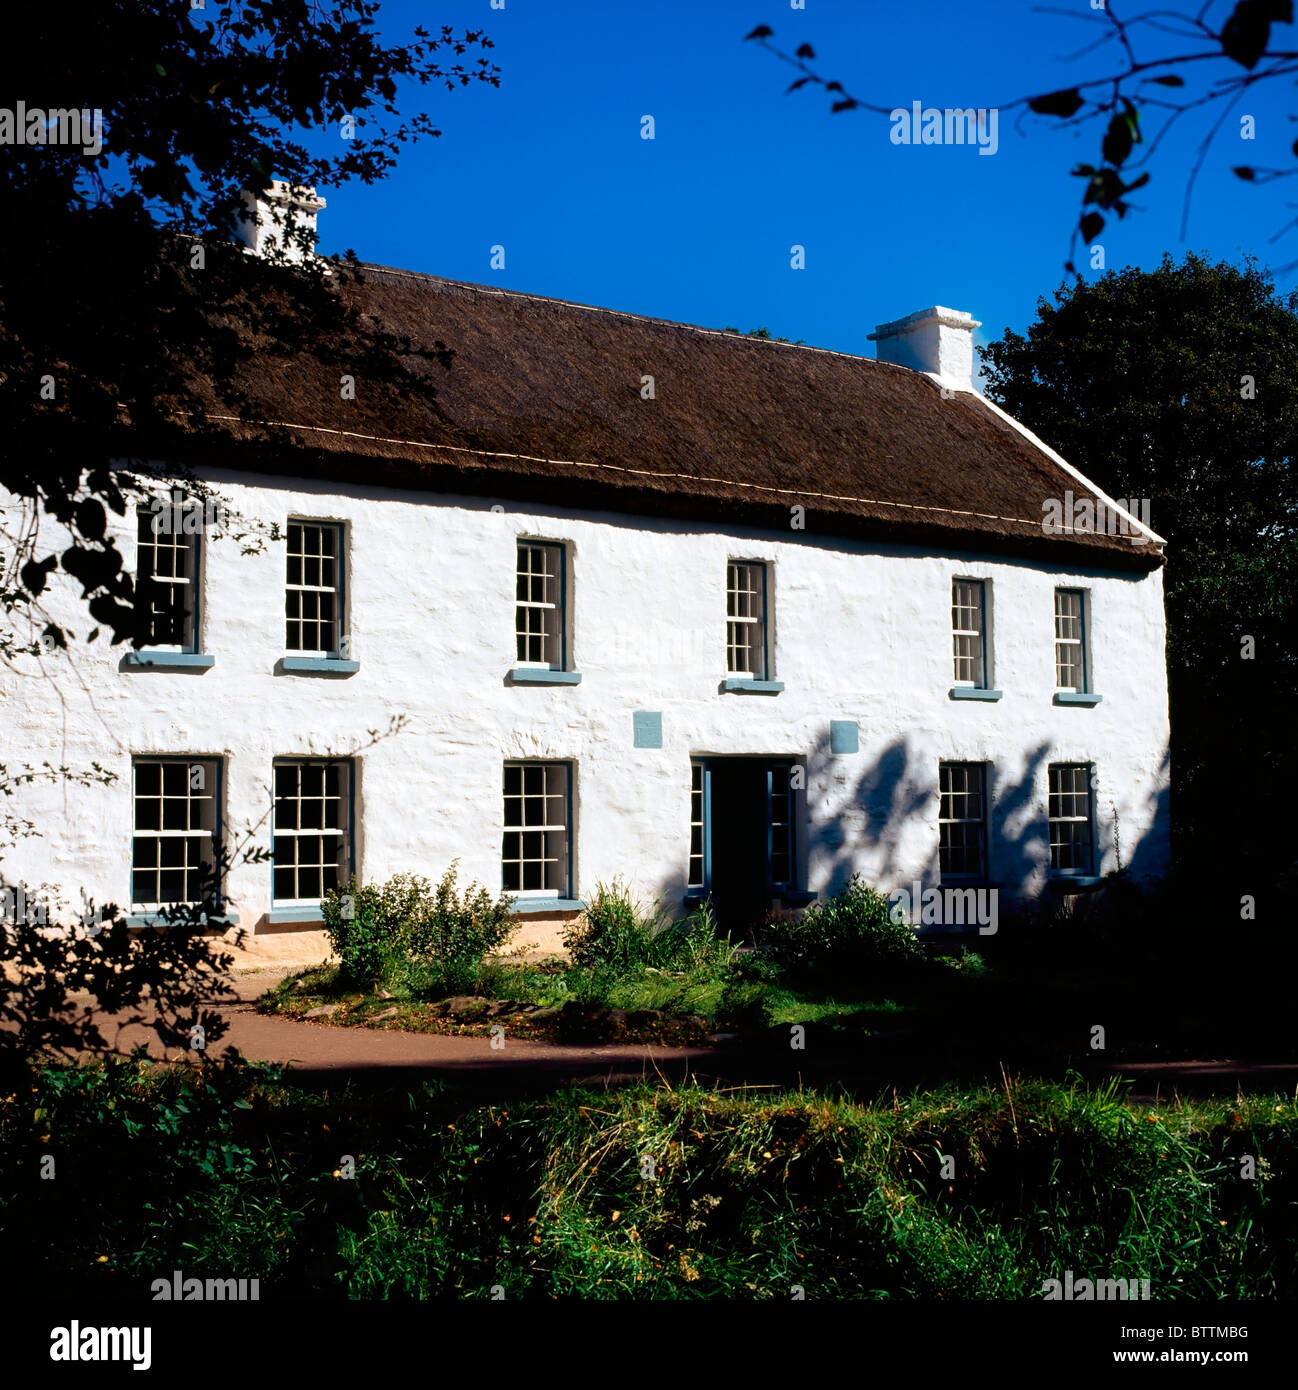 Omagh Campbell House, Ulster American Folk Park, Co Tyrone, Ireland - Stock Image